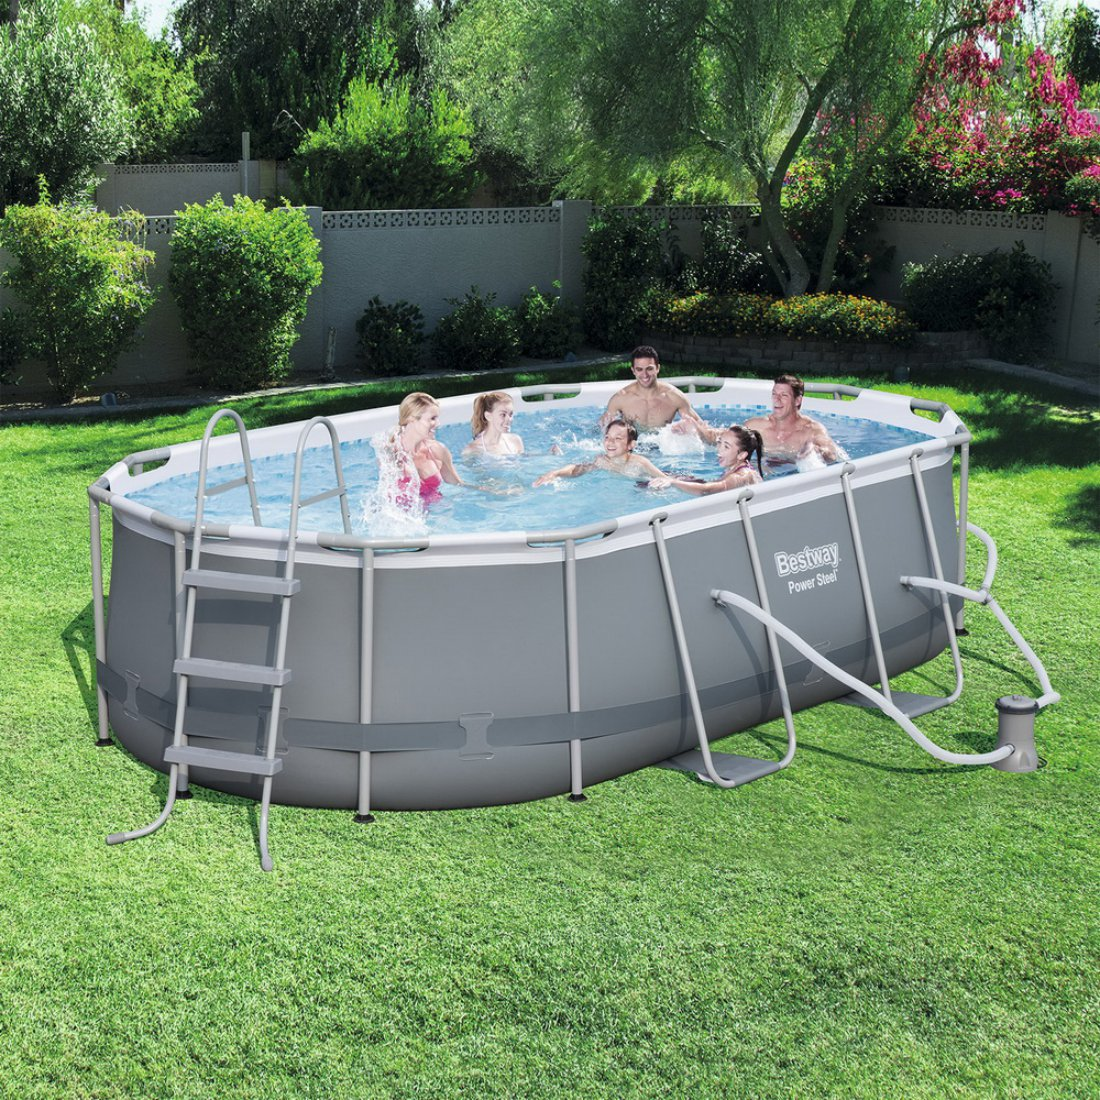 Bestway Power Steel Oval Pool Set 4.24m x 2.50m x 1.00m